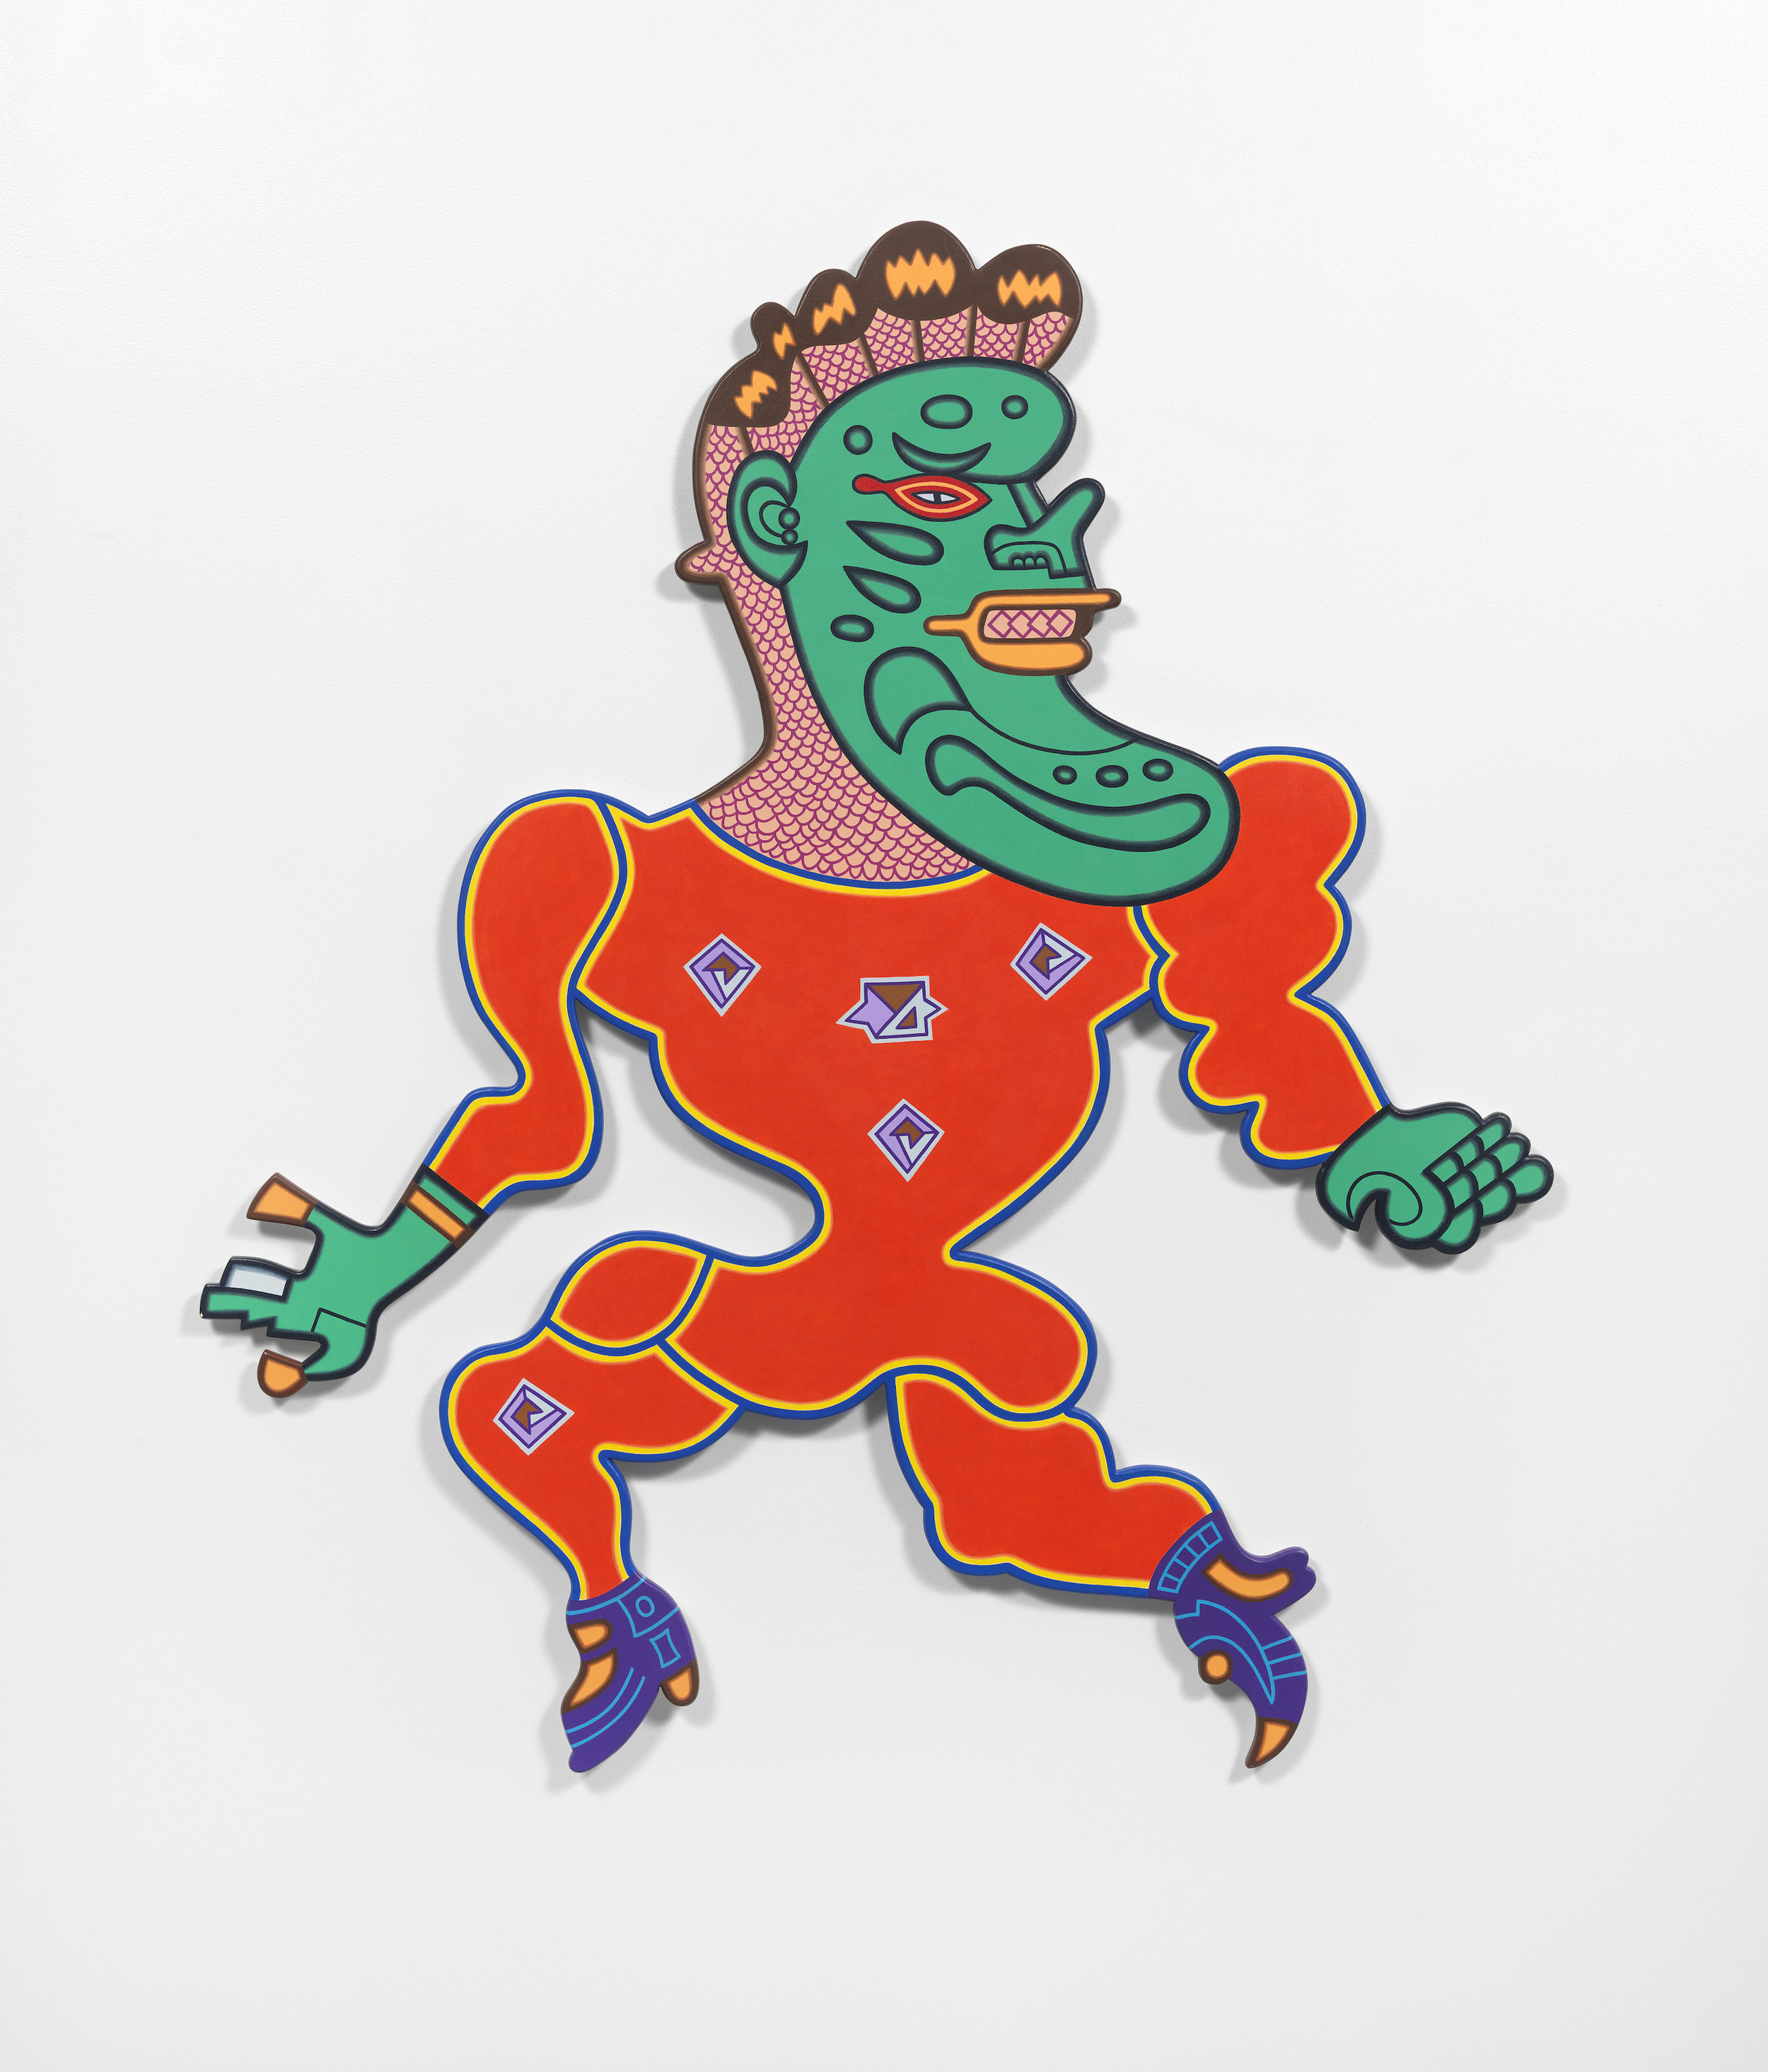 Karl Wirsum, Cabaza Big Head Pickle Face, 2002, Acrylic on shaped wood, 41 x 48 x 2 inches